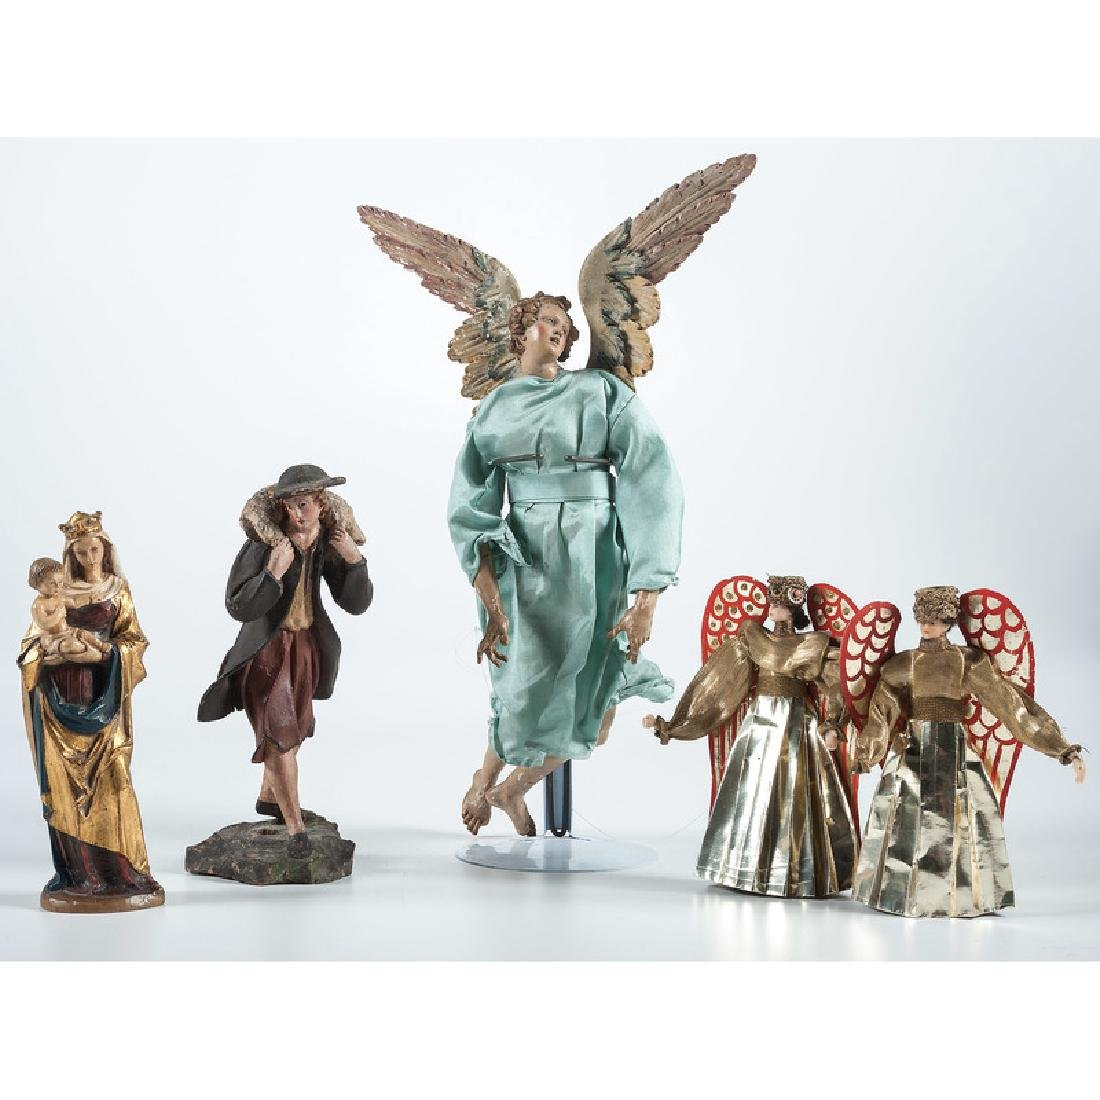 Antique Christmas Ornaments and Nativity Figures